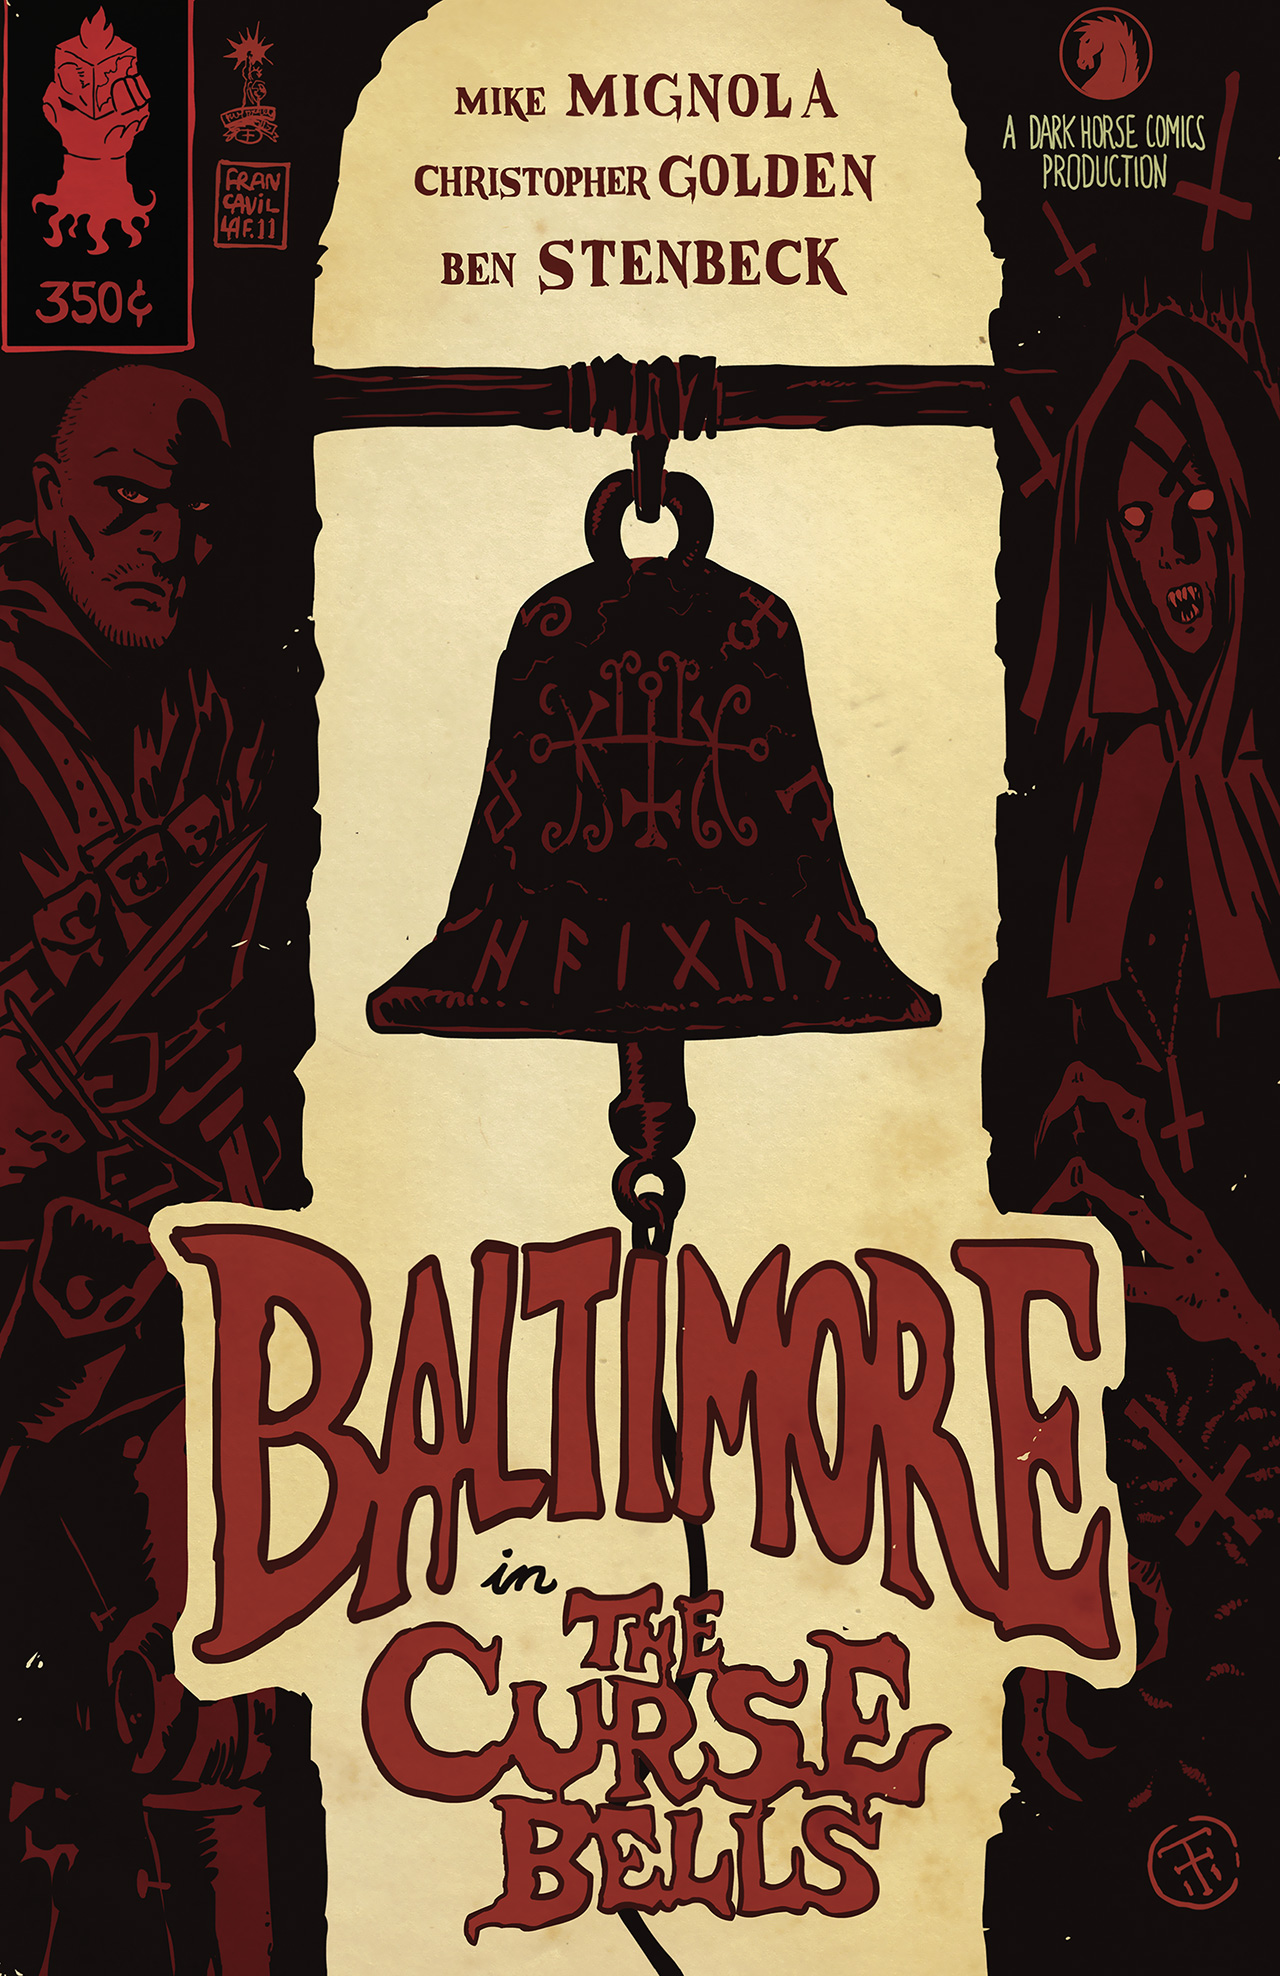 Read online Baltimore: The Curse Bells comic -  Issue #1 - 2